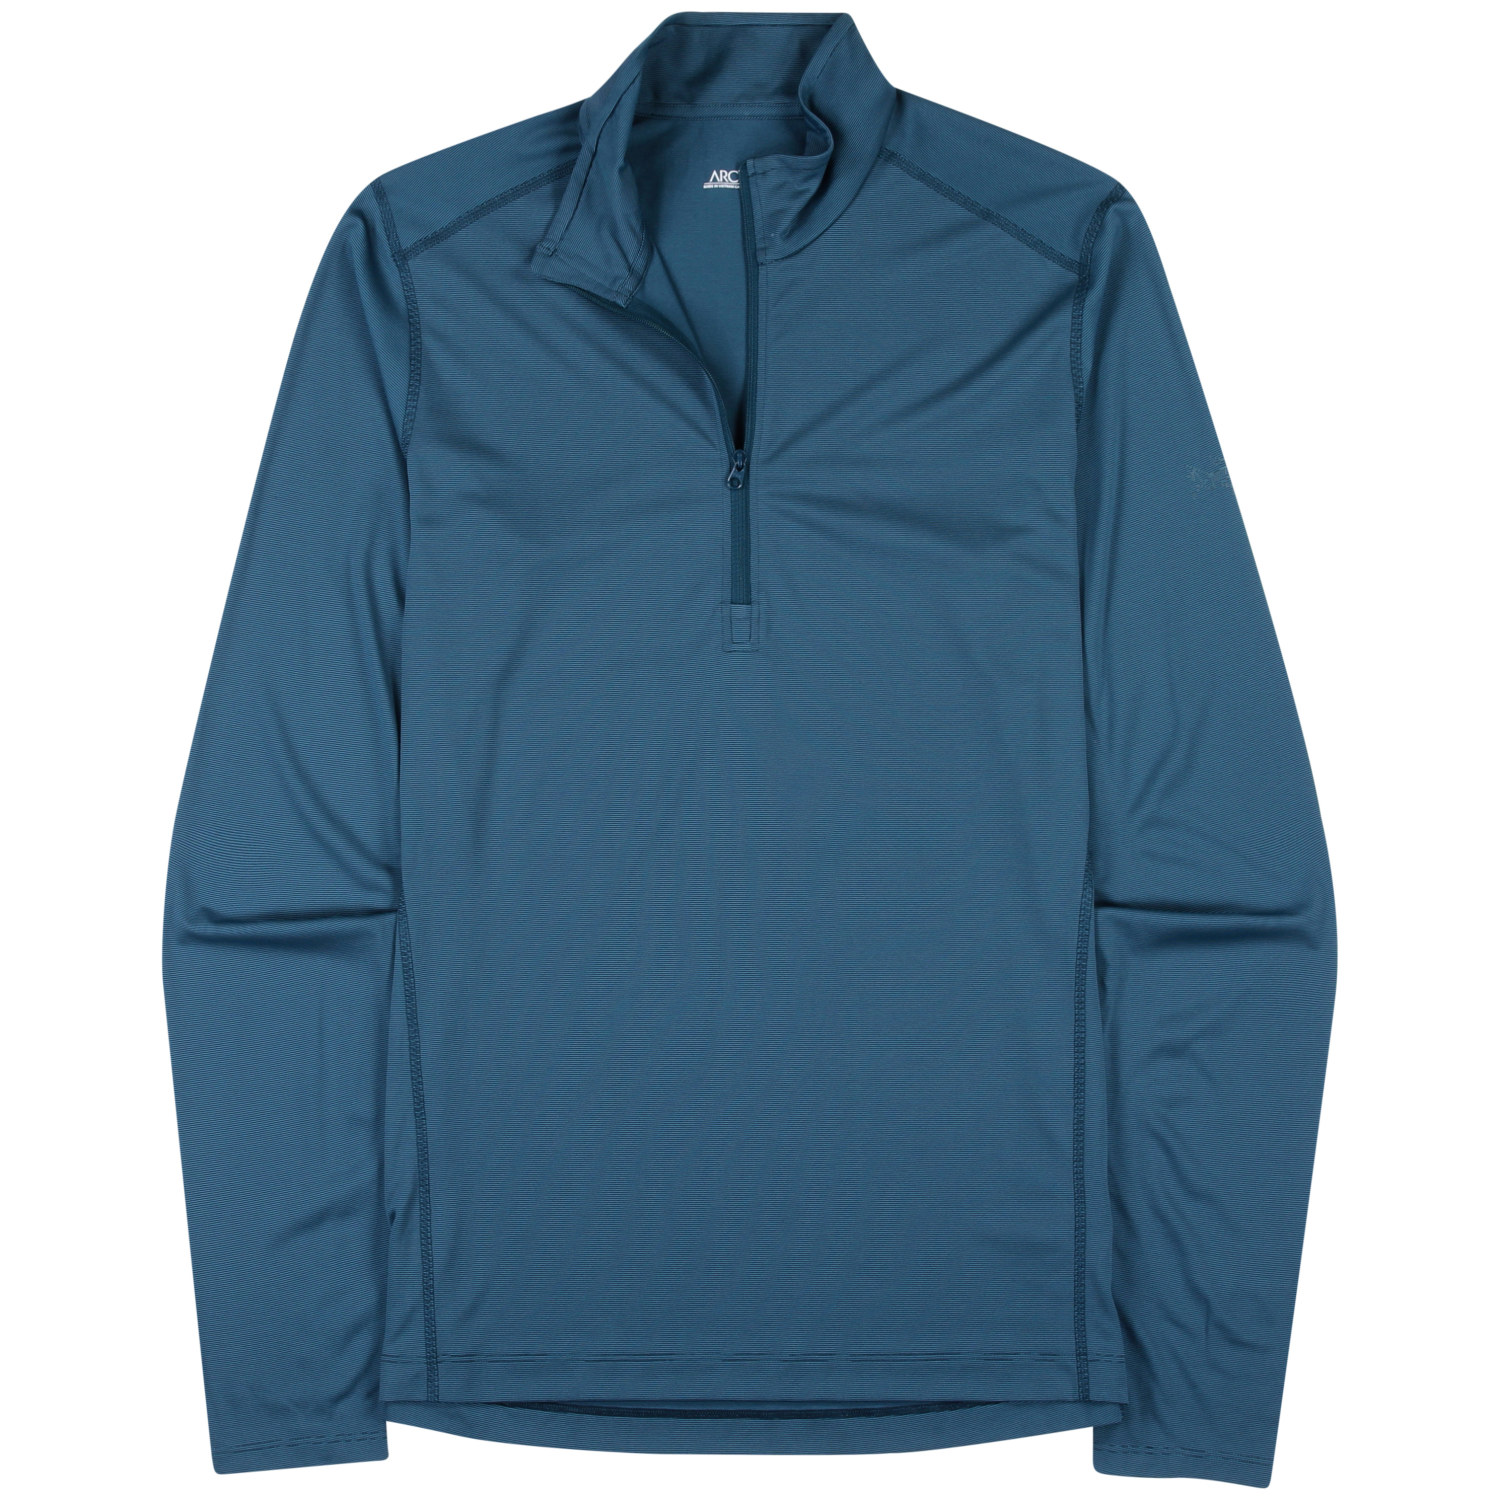 Main product image: Phase SL Zip Neck LS Men's